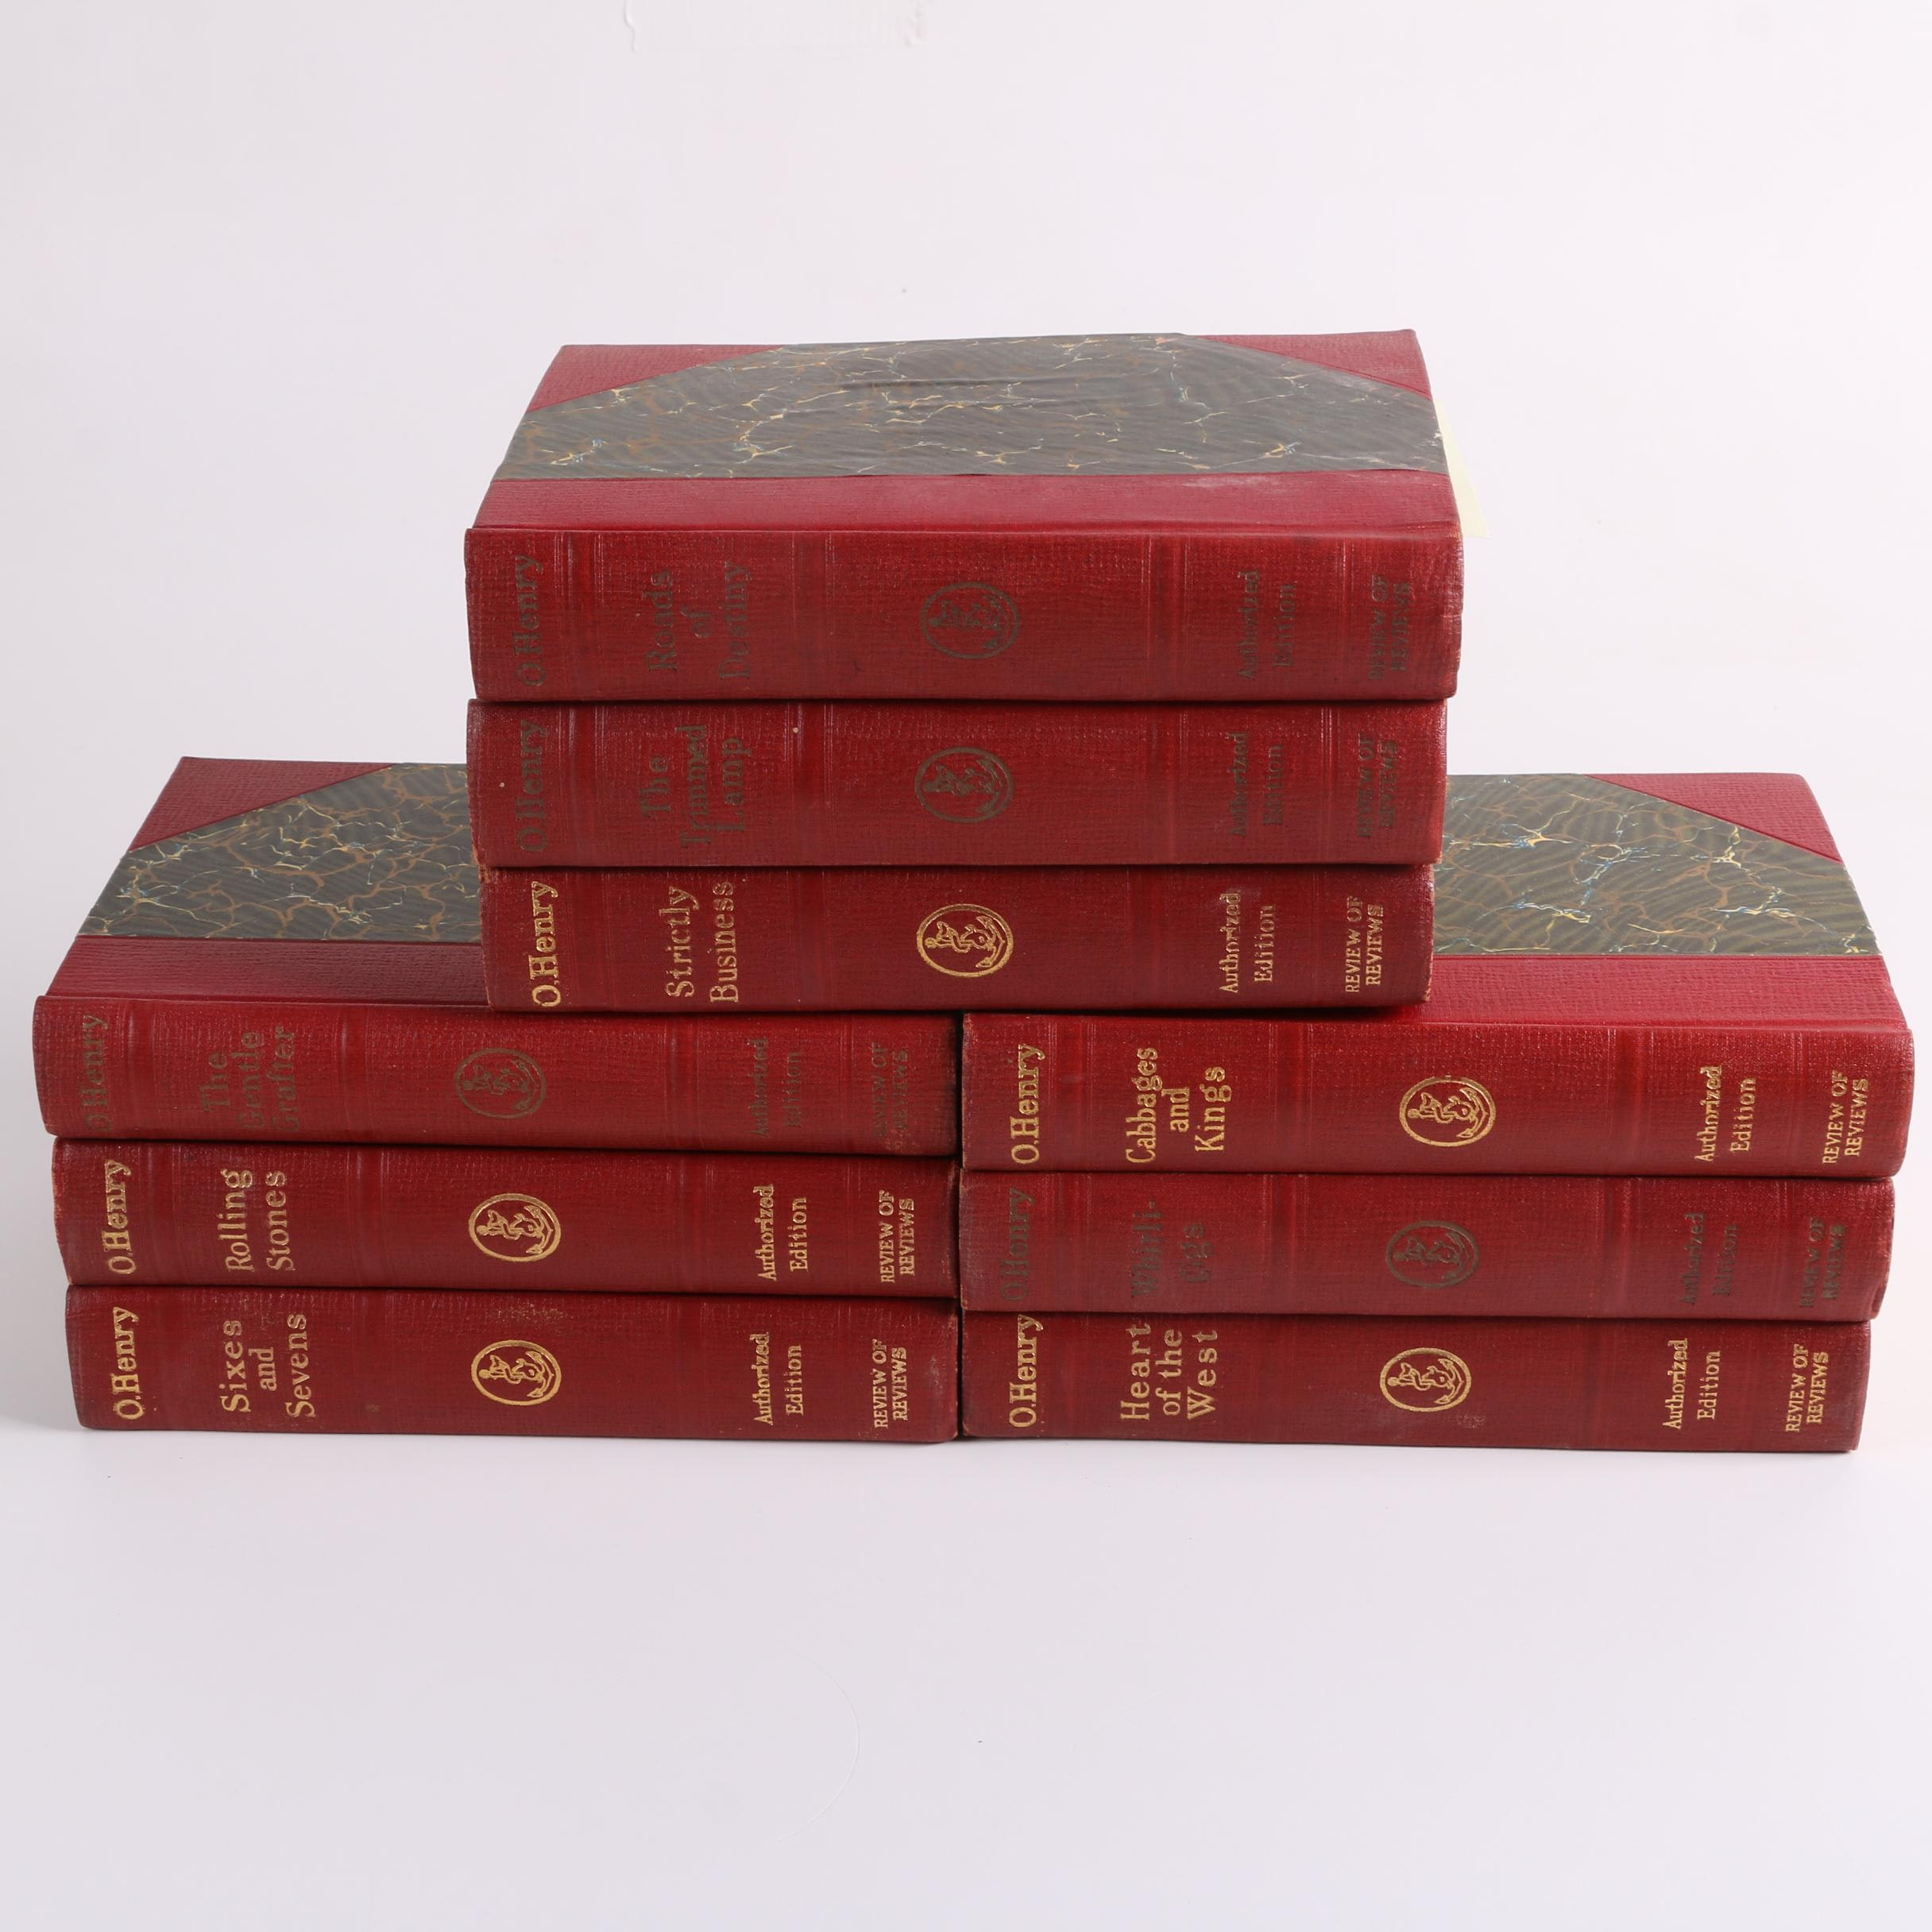 Early-1900s Anthology of O. Henry's Works